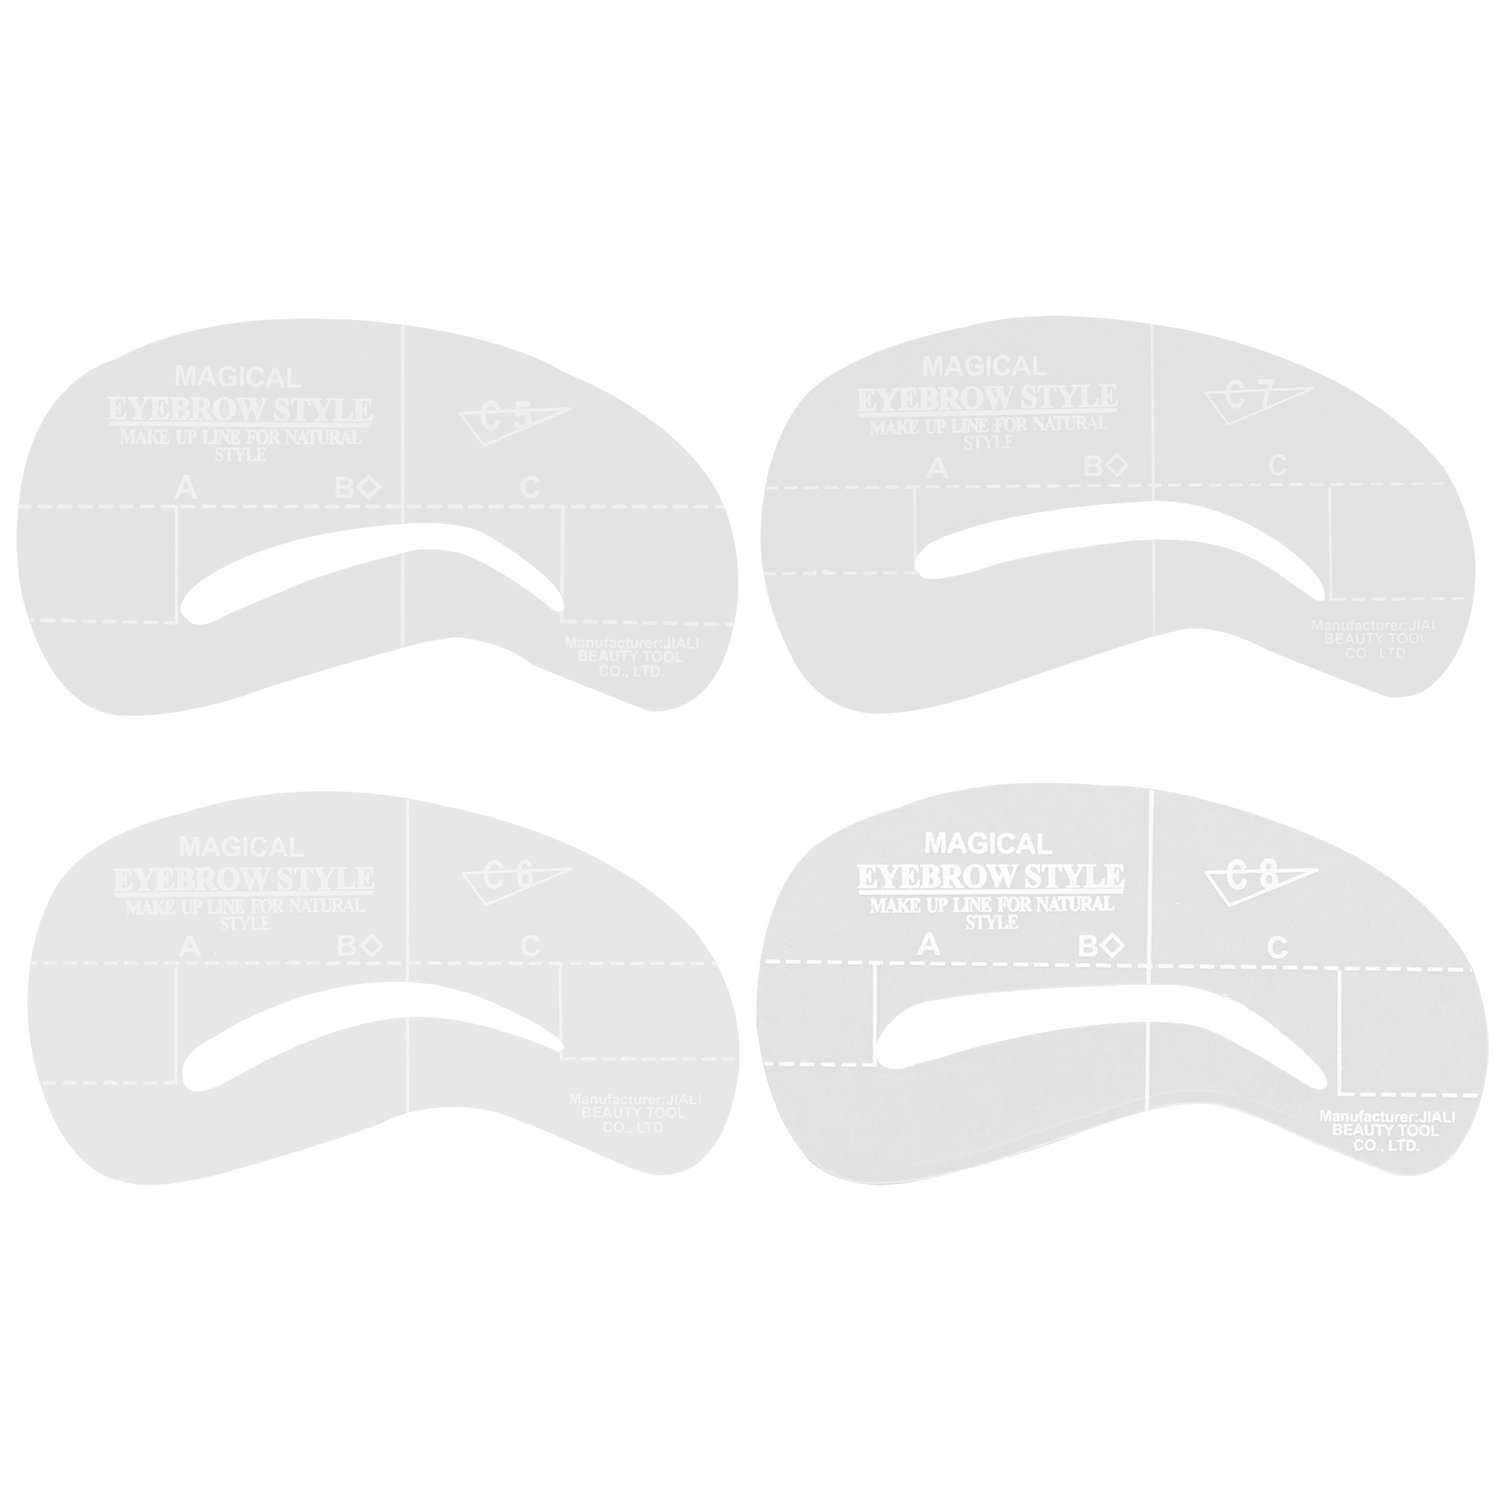 4 Styles Stencil Kit Make up Shaping Beauty Eyebrow Template Tools (C5-C8.)